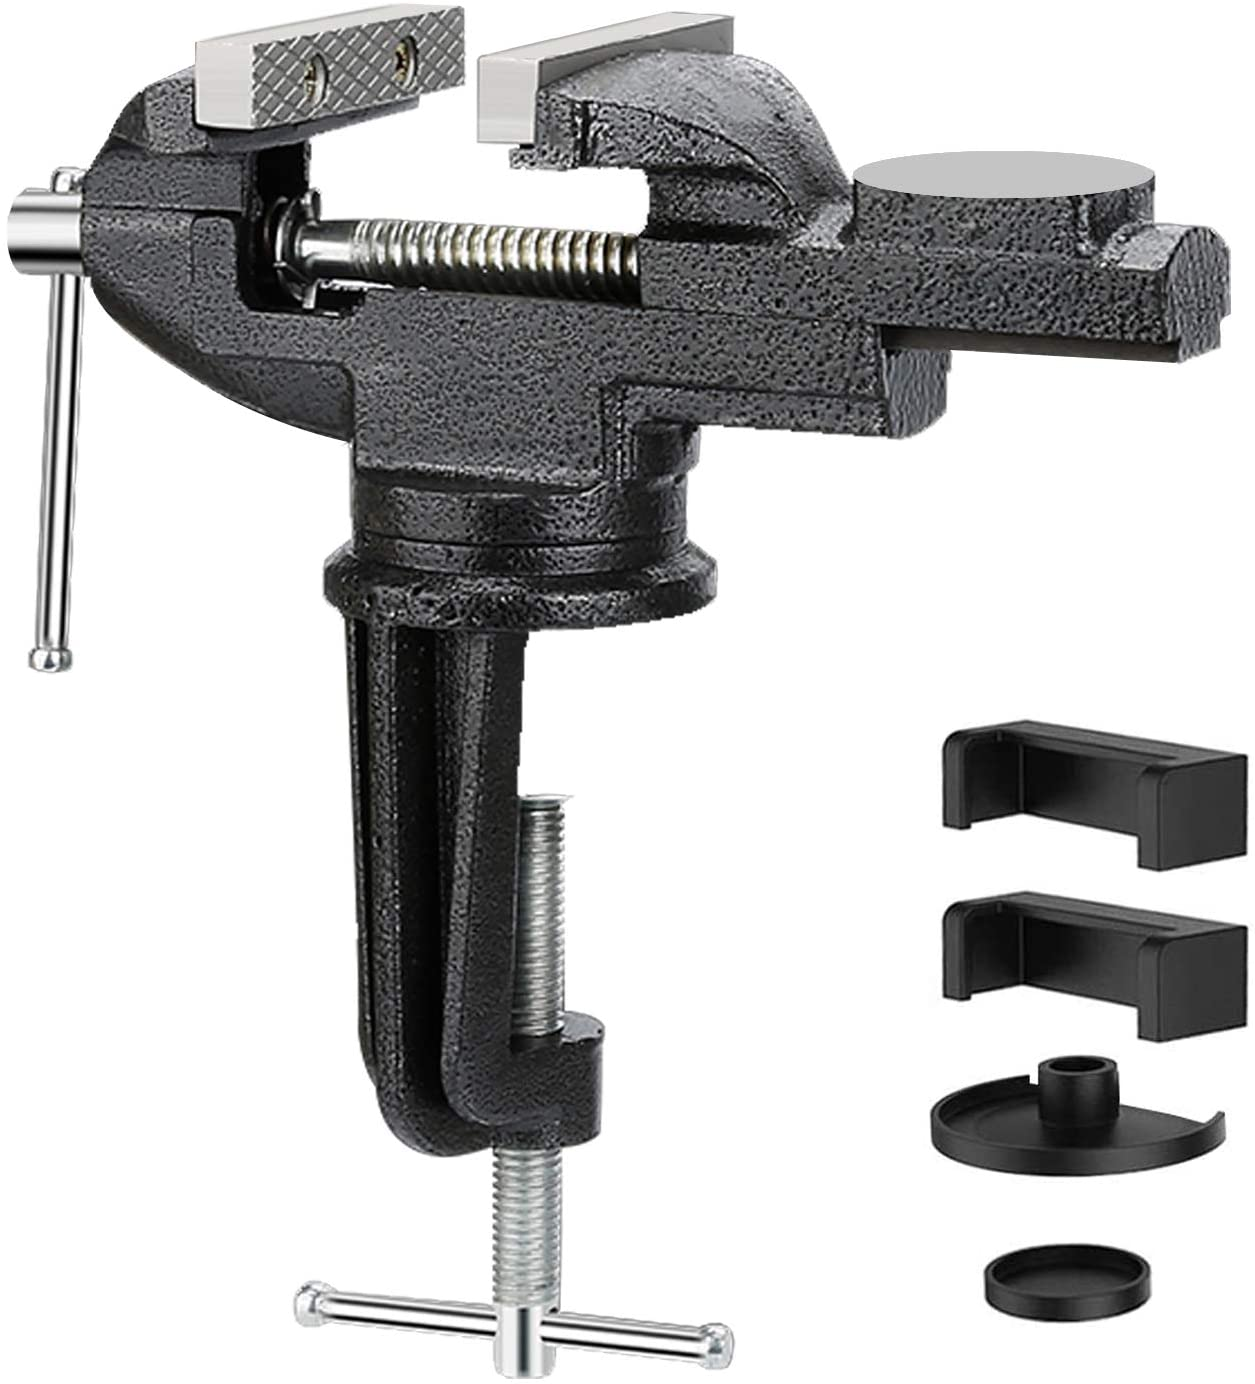 WXTools Universal Table Vise